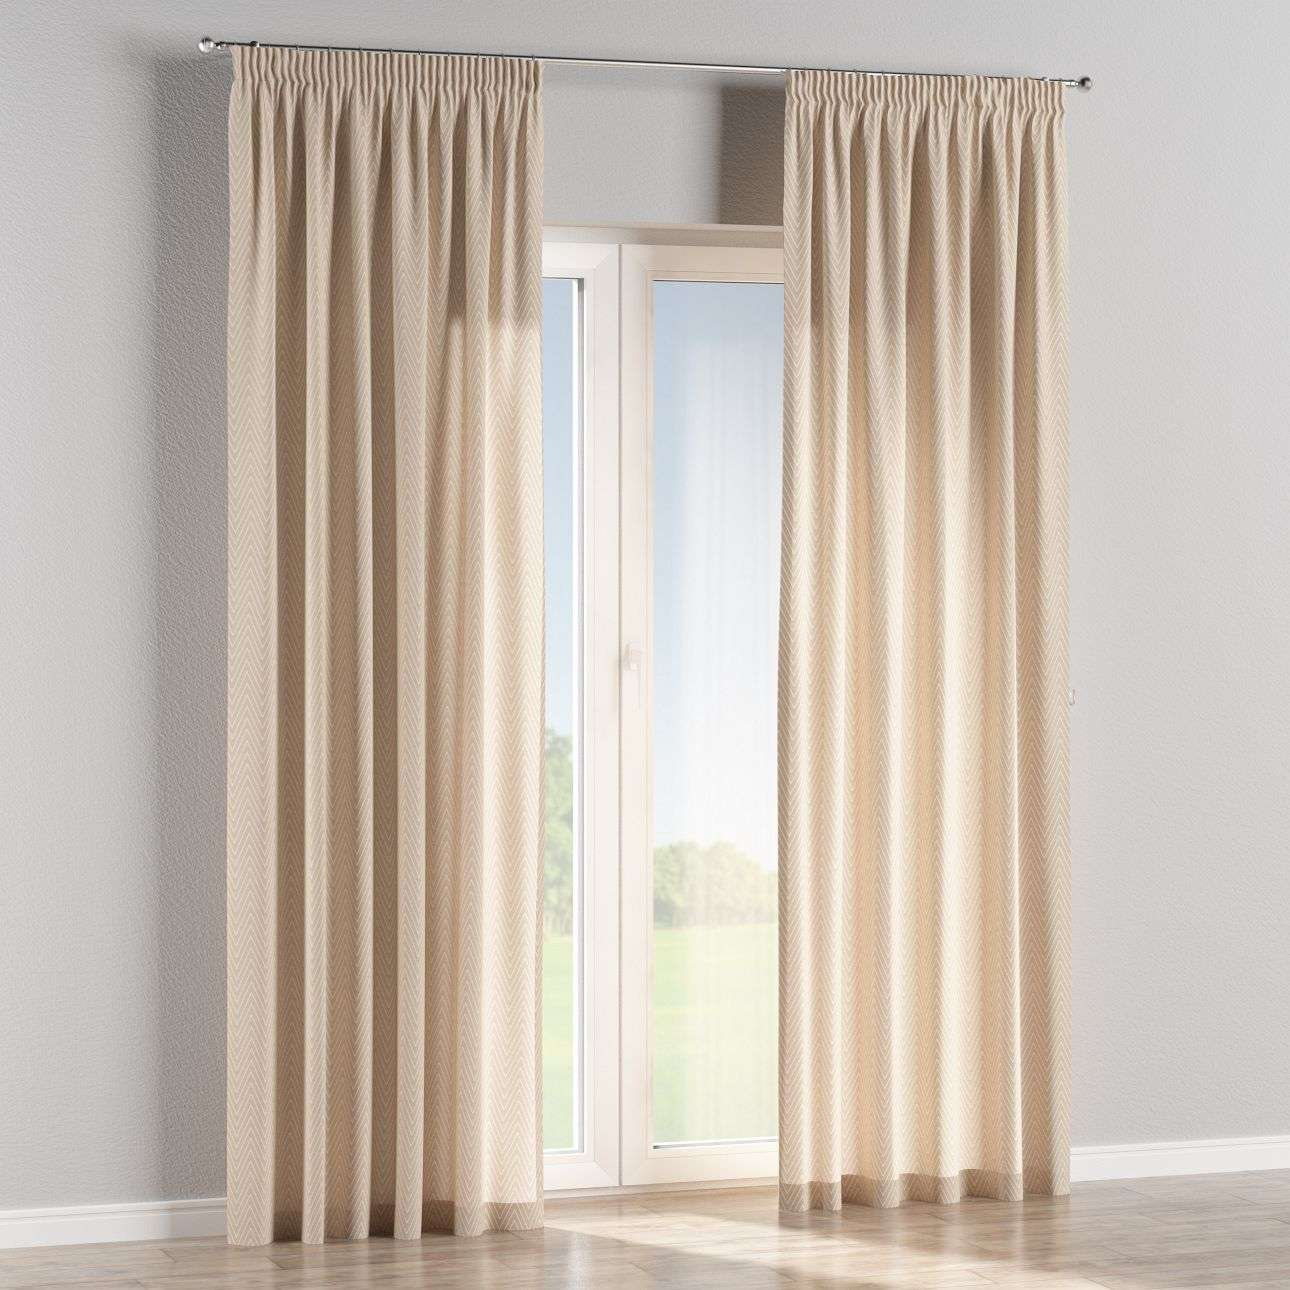 Pencil pleat curtains in collection Brooklyn, fabric: 137-91